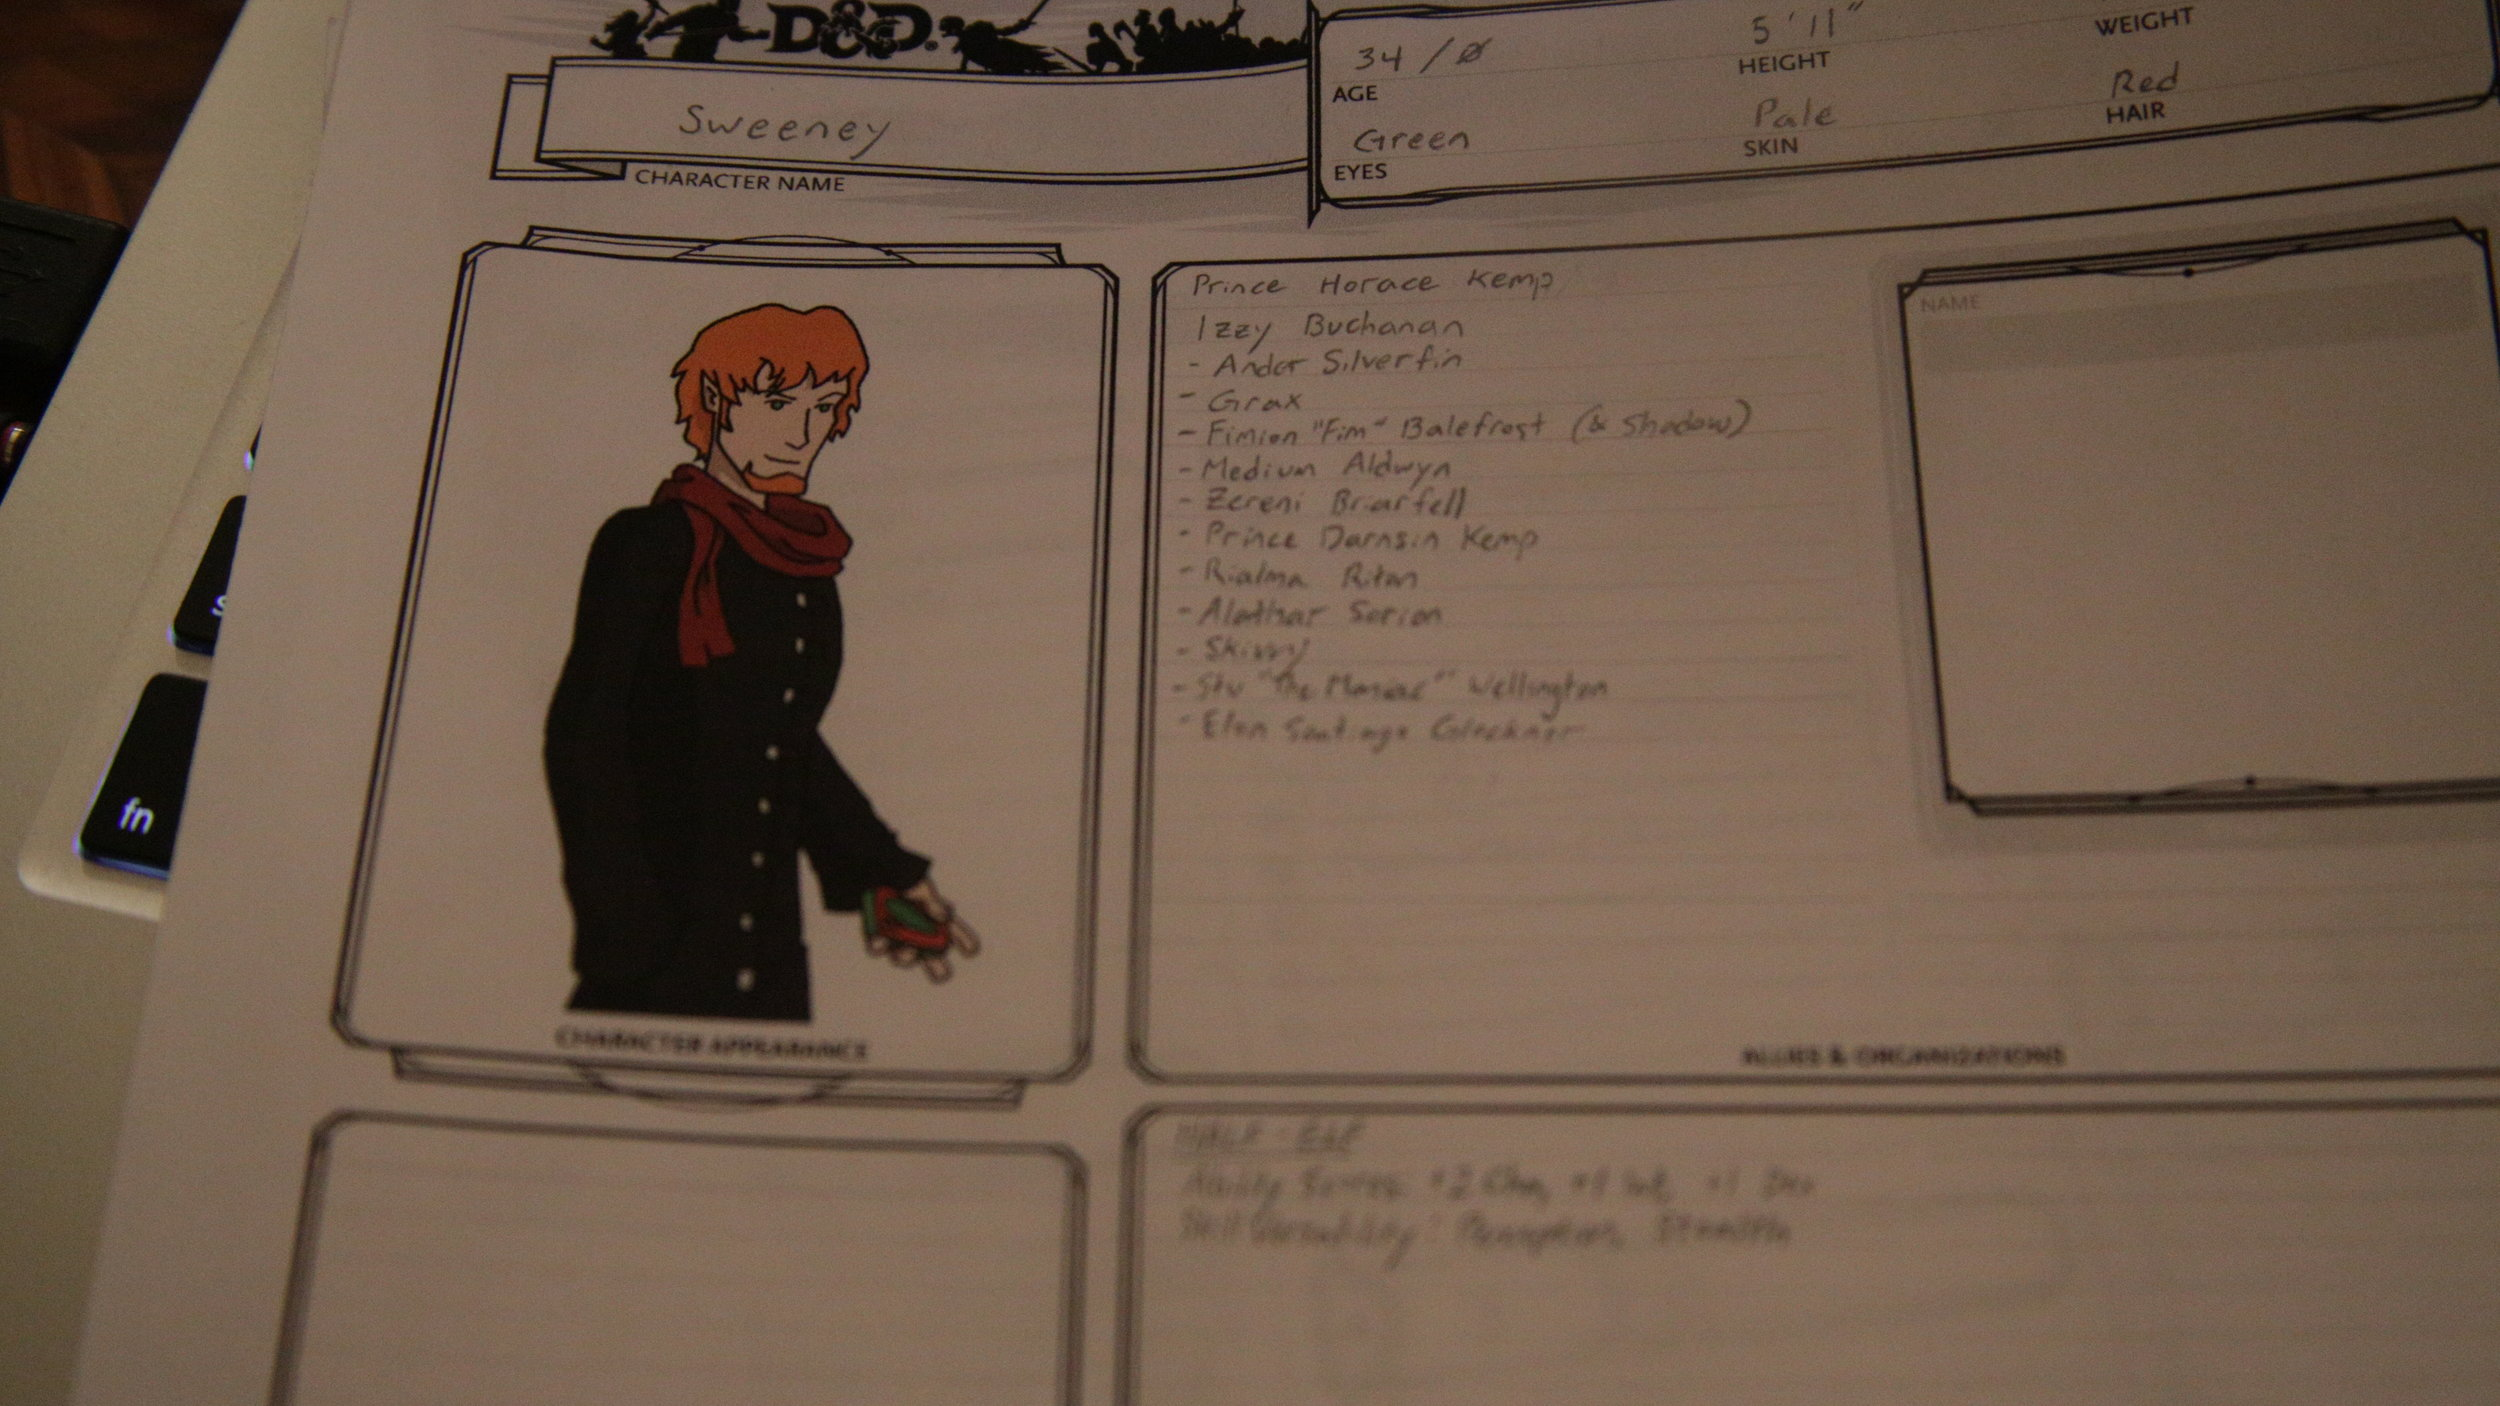 Copy of Sweeney's character sheet (Season 14)